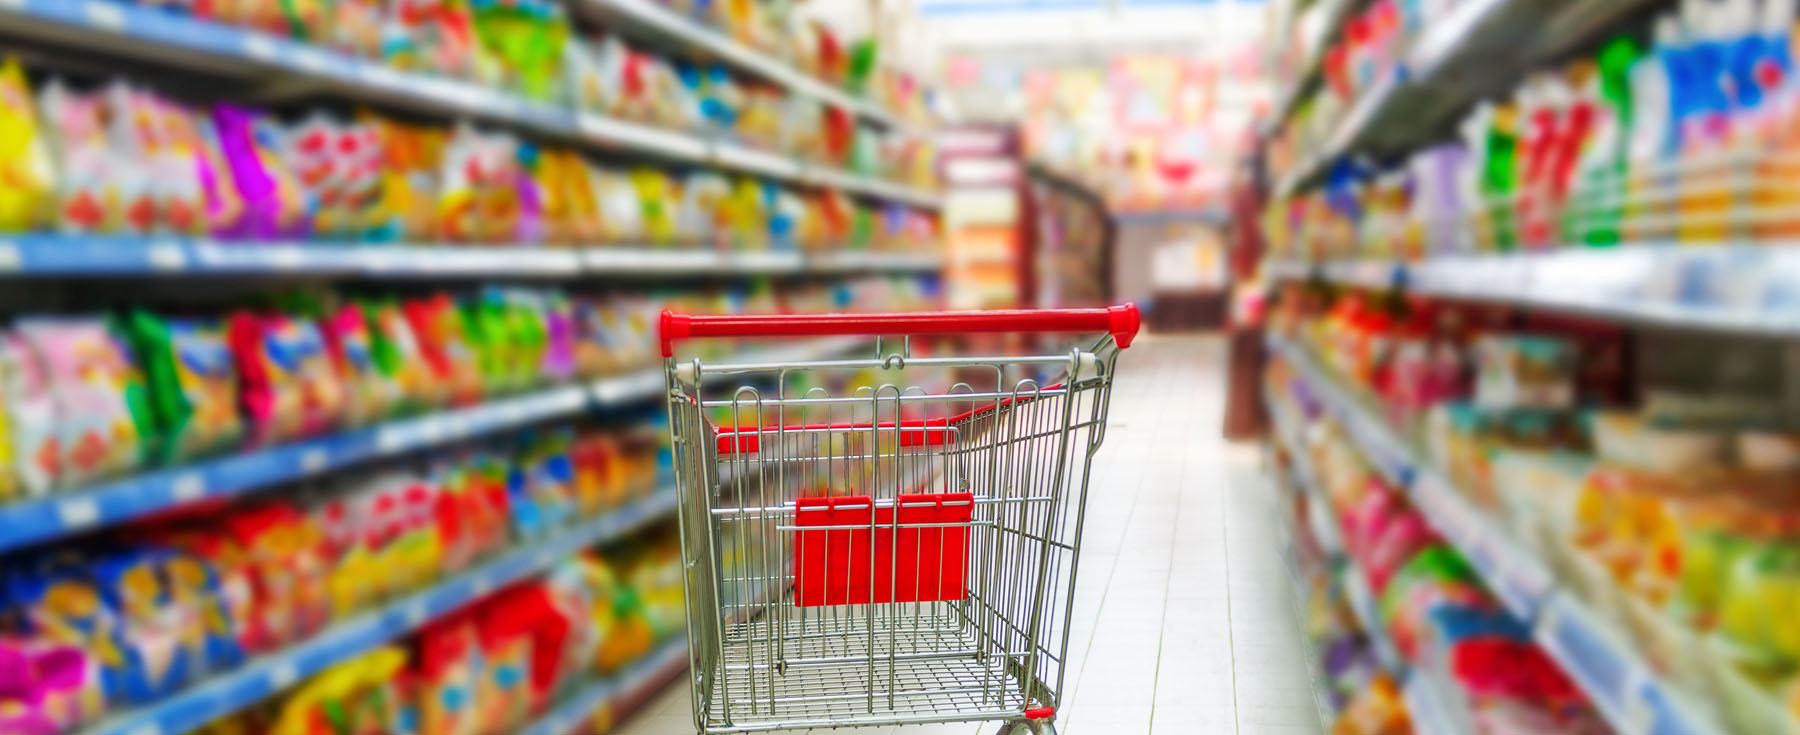 Is Food On The Shelf Of A Grocery Store